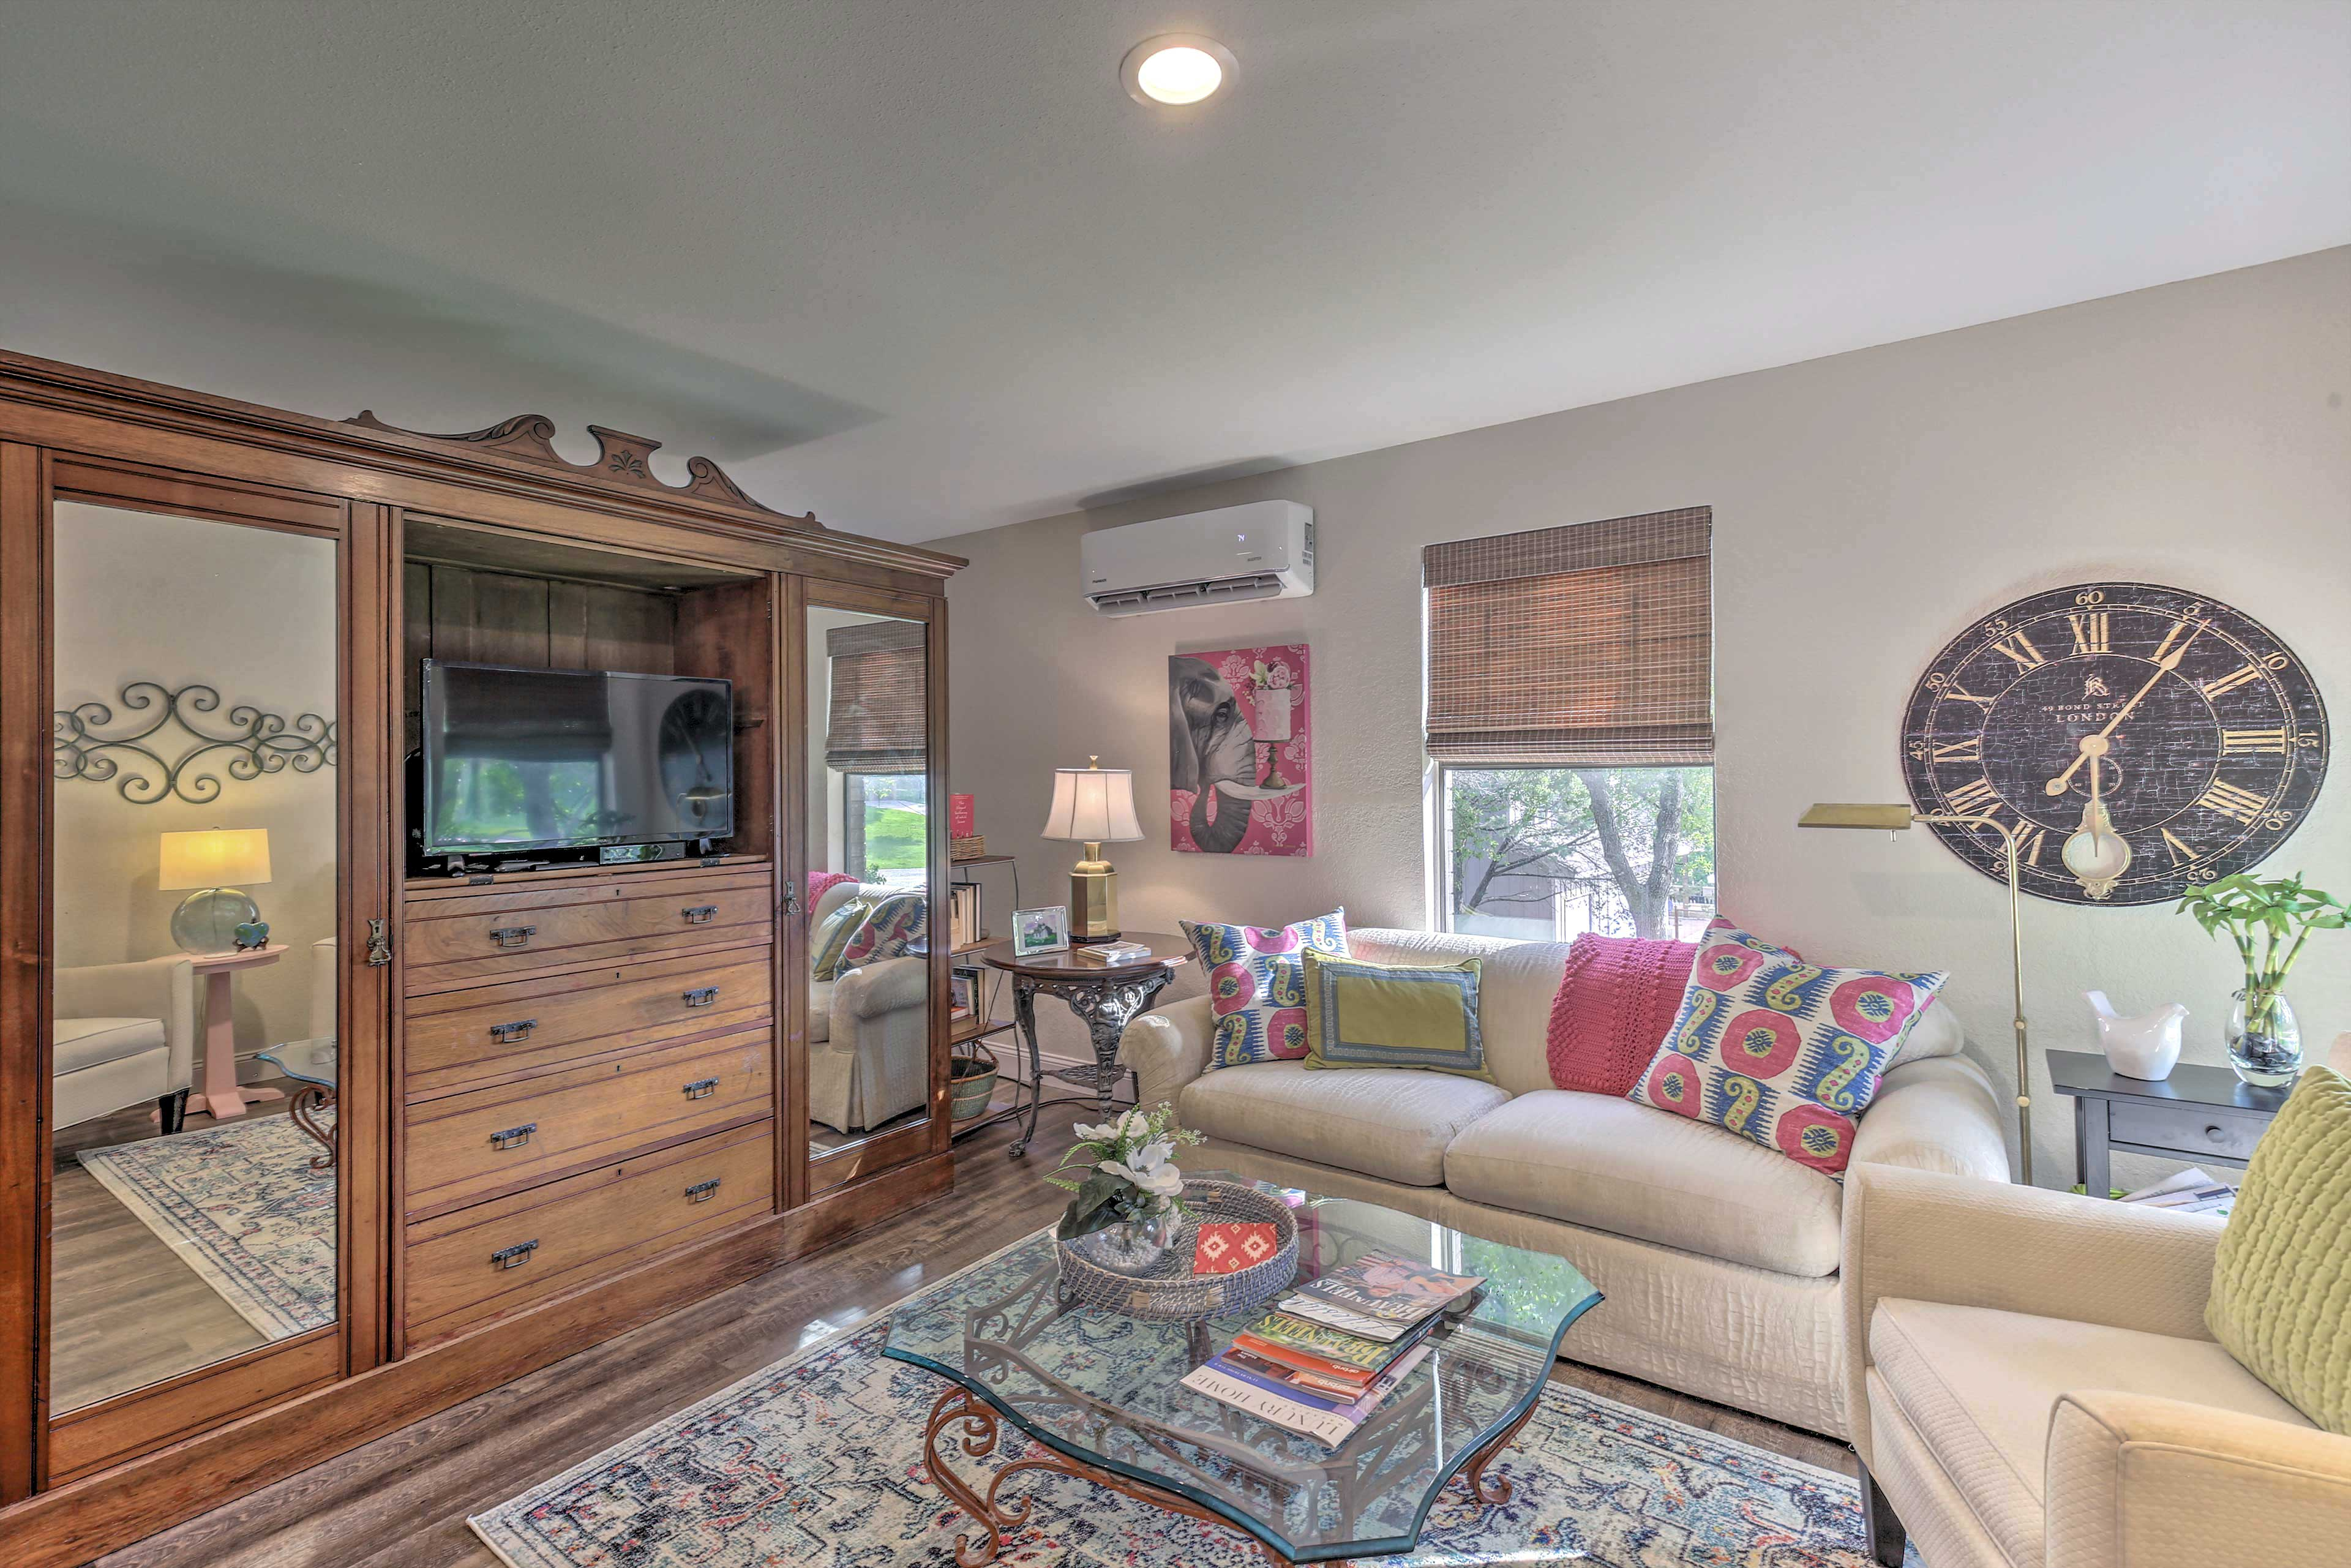 New Braunfels Vacation Rental | Studio | 1BA | 625 Sq Ft | Stairs Required